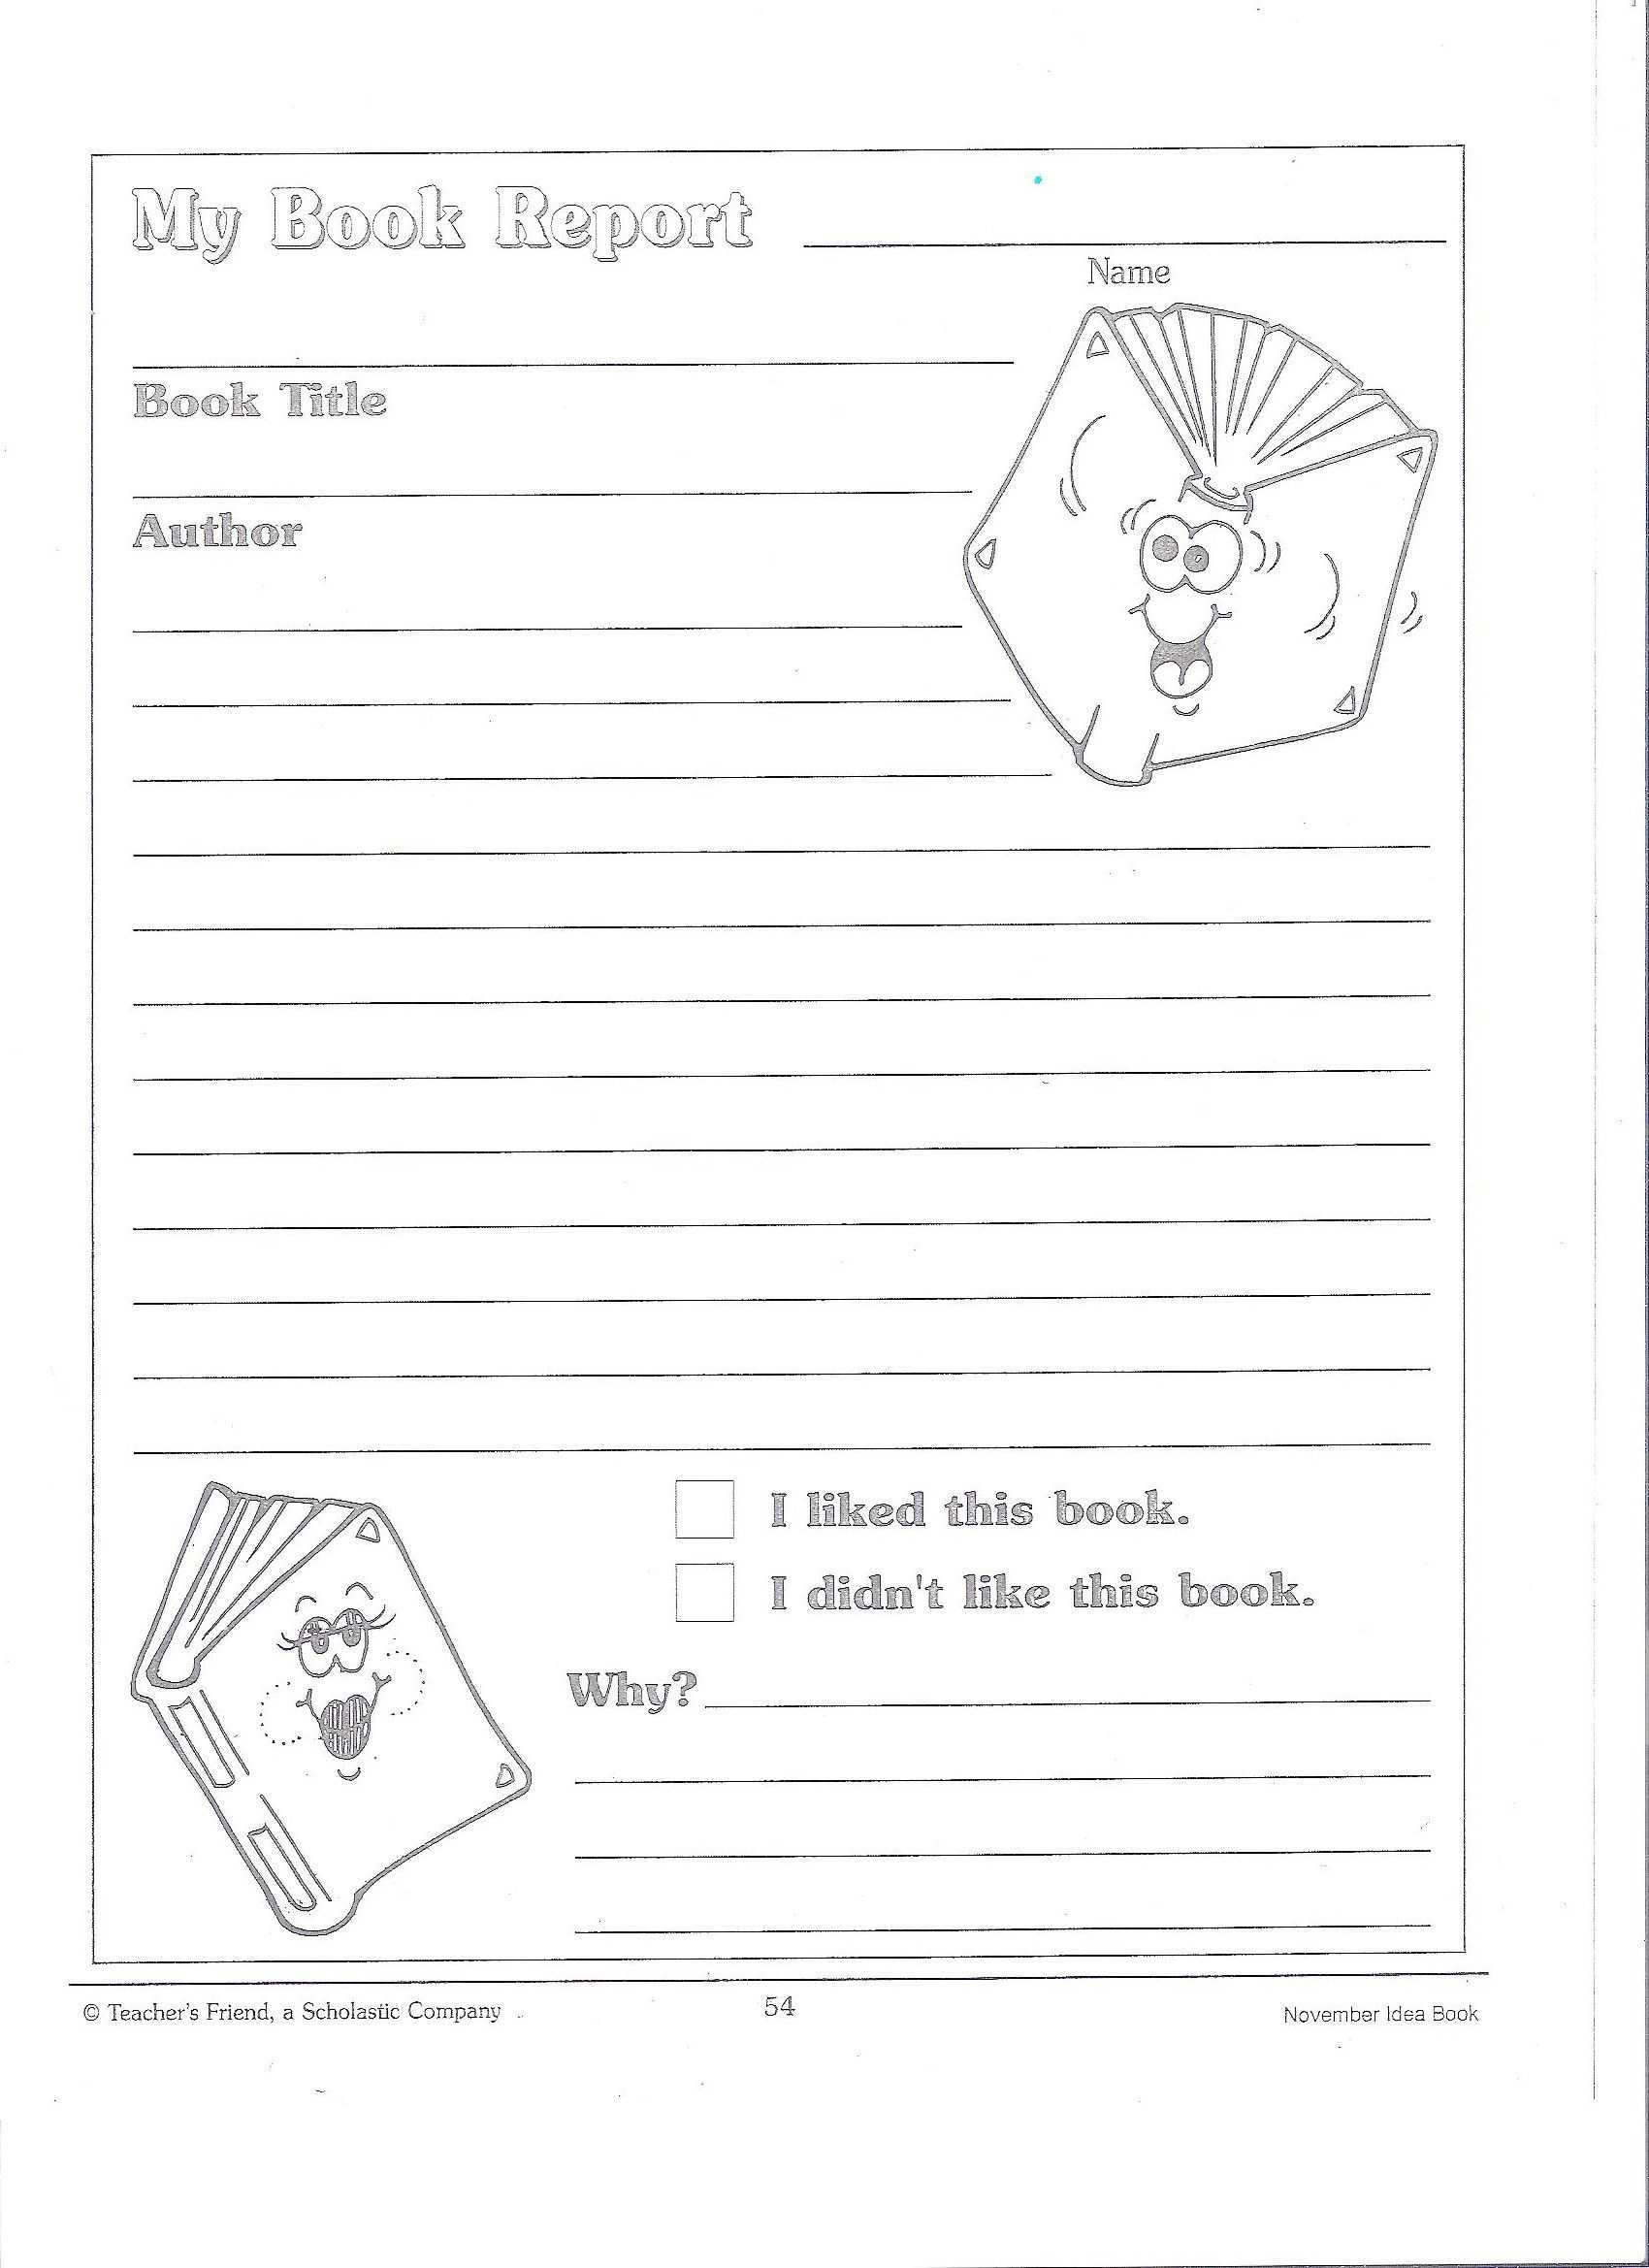 Printable Book Report Forms | Miss Murphy's 1St And 2Nd With Regard To 1St Grade Book Report Template